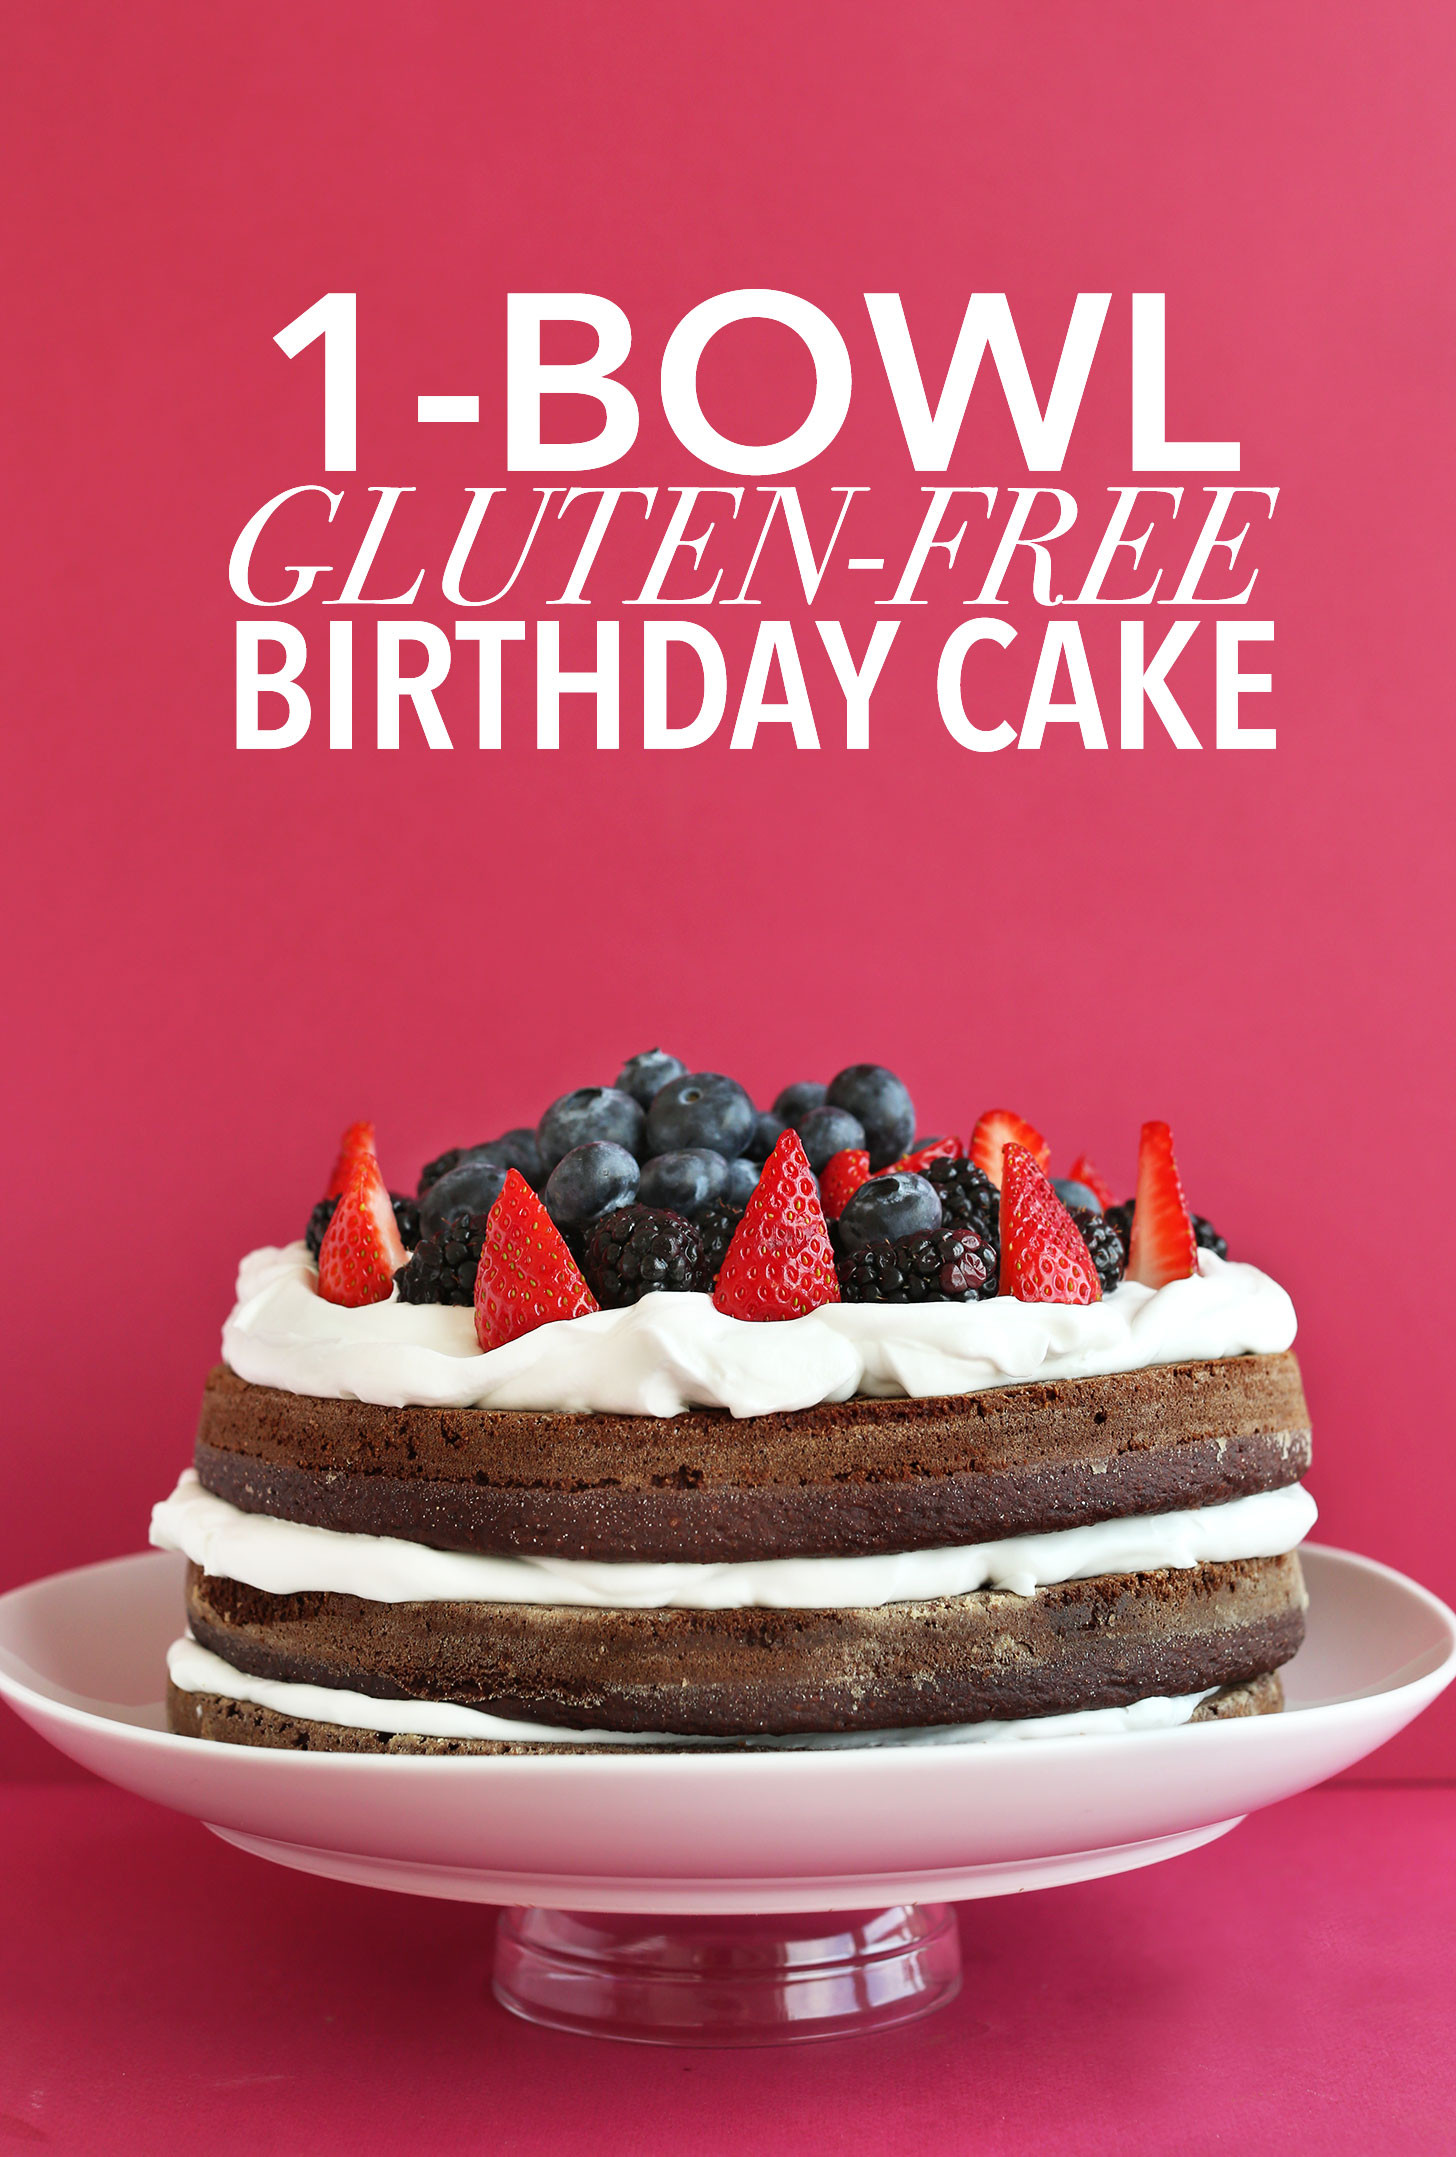 Best ideas about Vegetarian Birthday Cake Recipes . Save or Pin Gluten Free Birthday Cake Now.